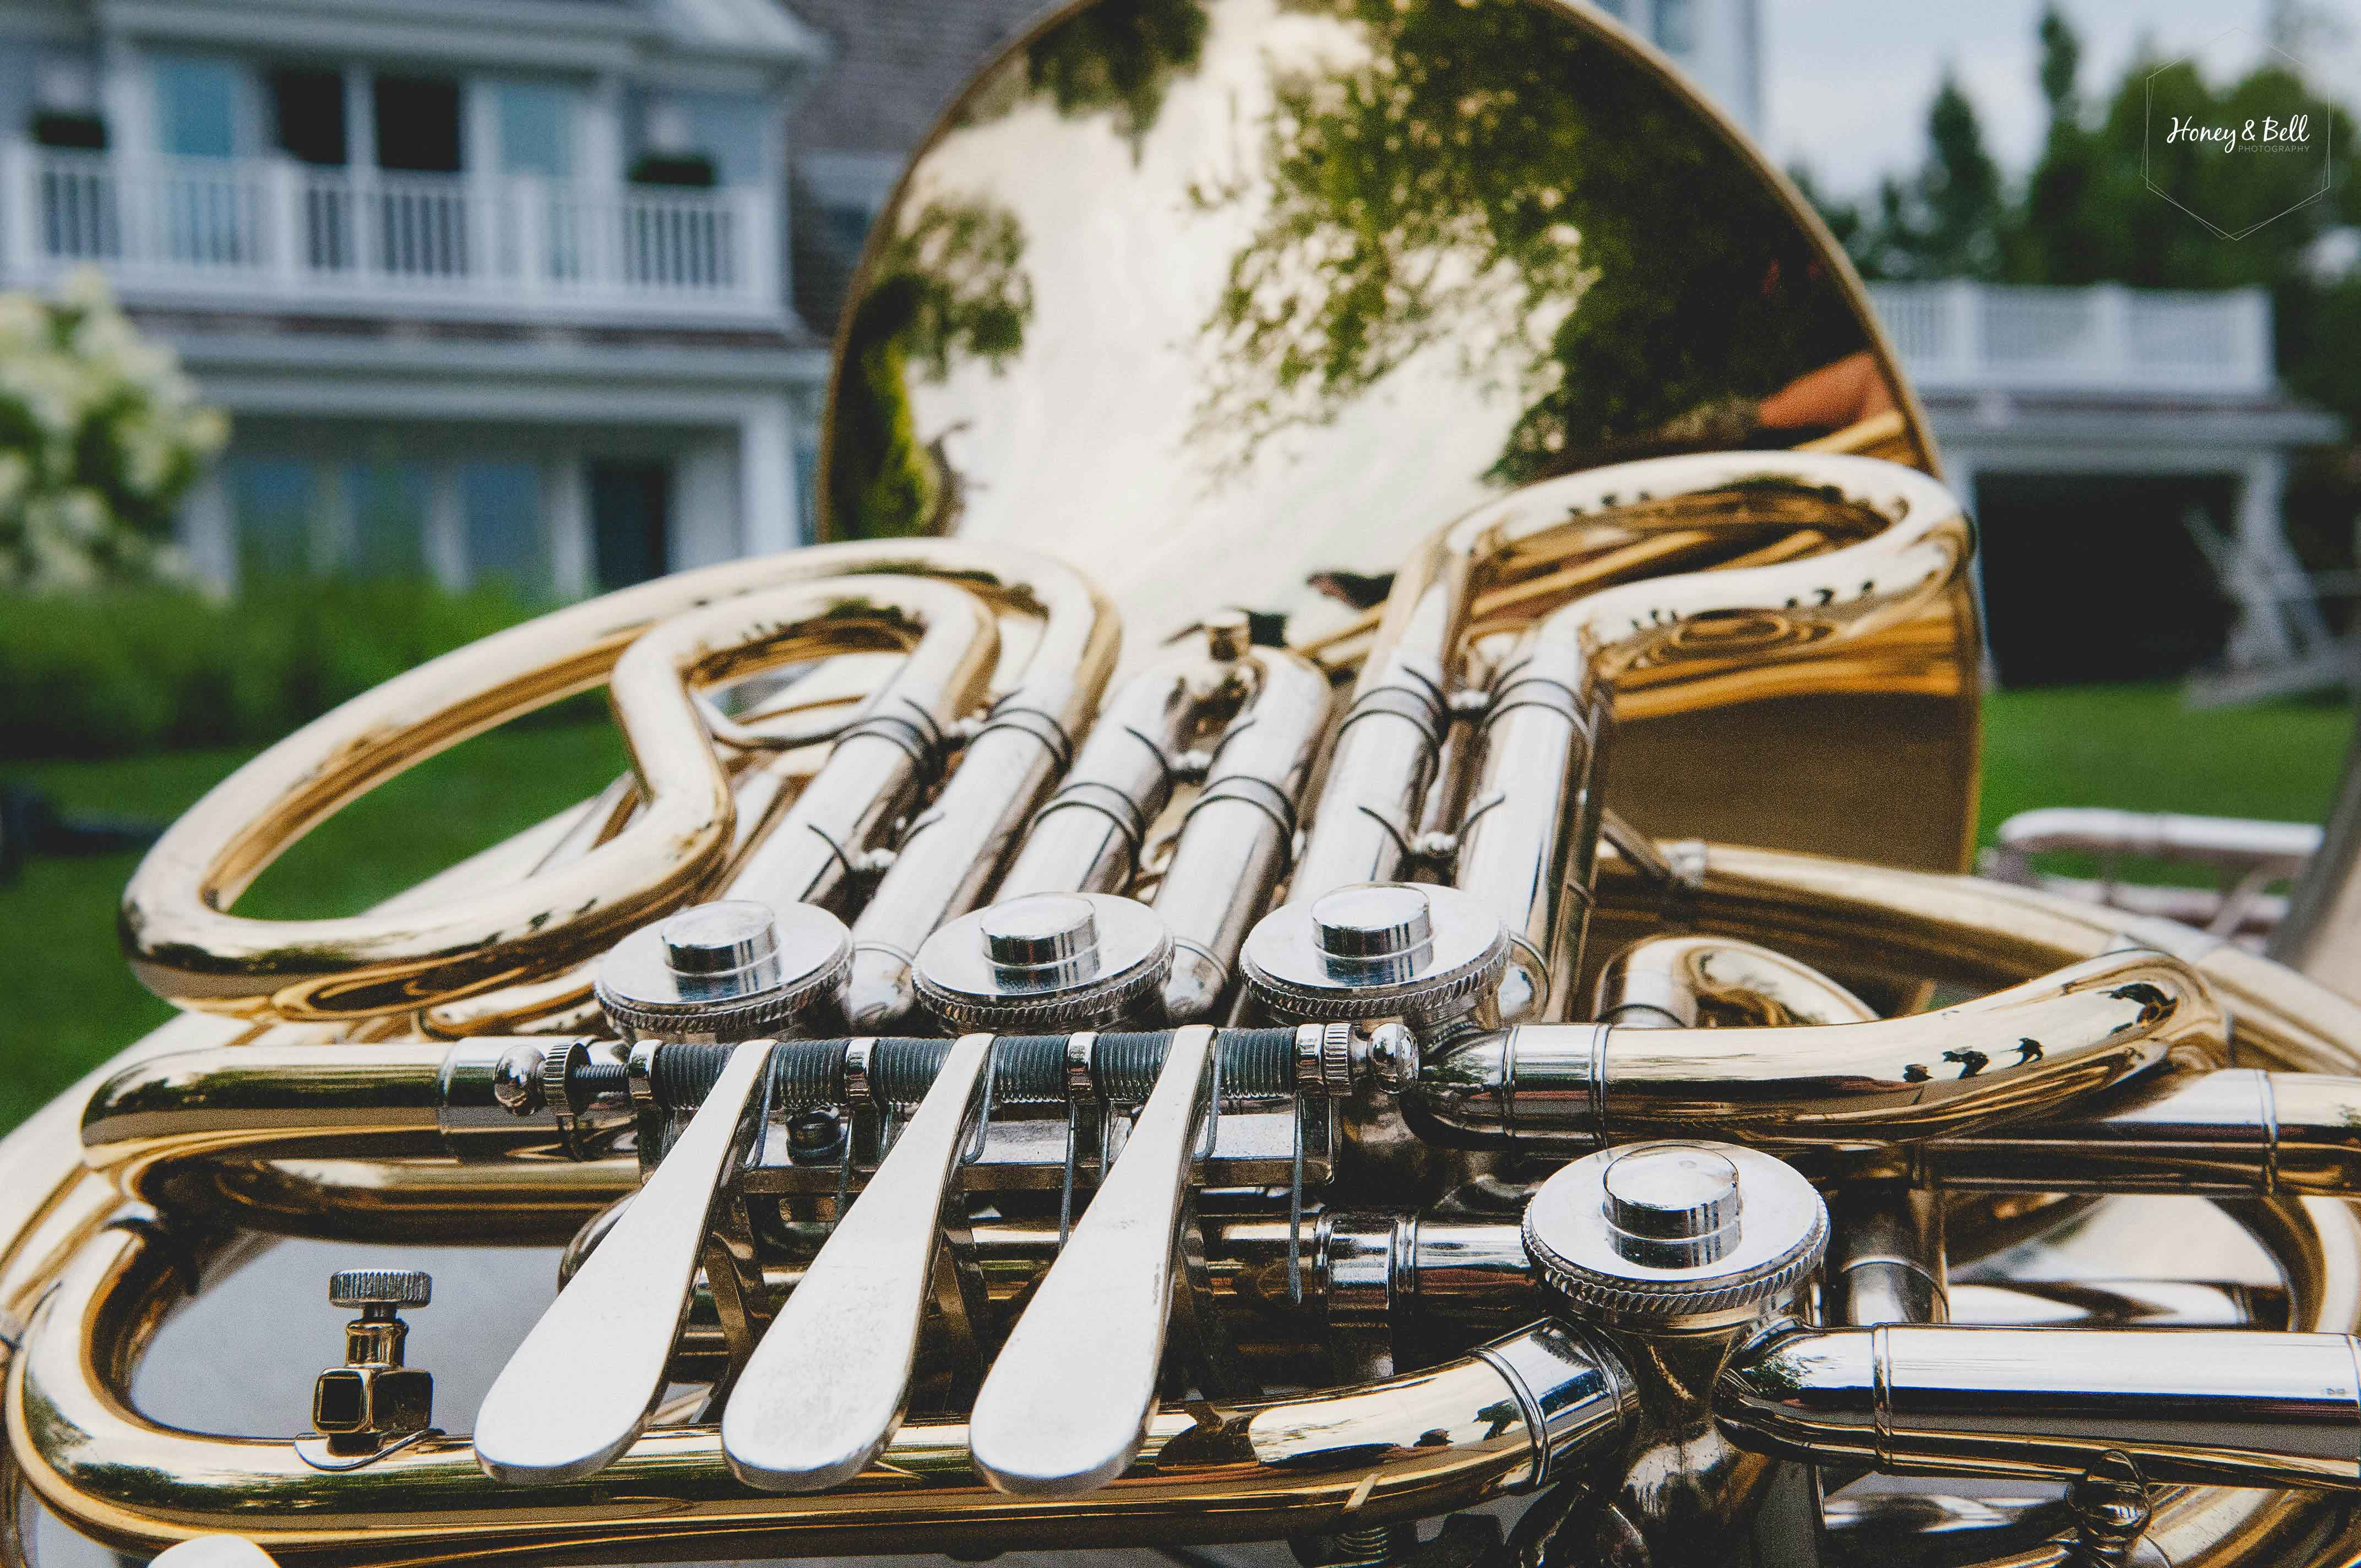 north-of-canada-brass-quintet-detroit-michigan-grosse-pointe-band-photographer-11